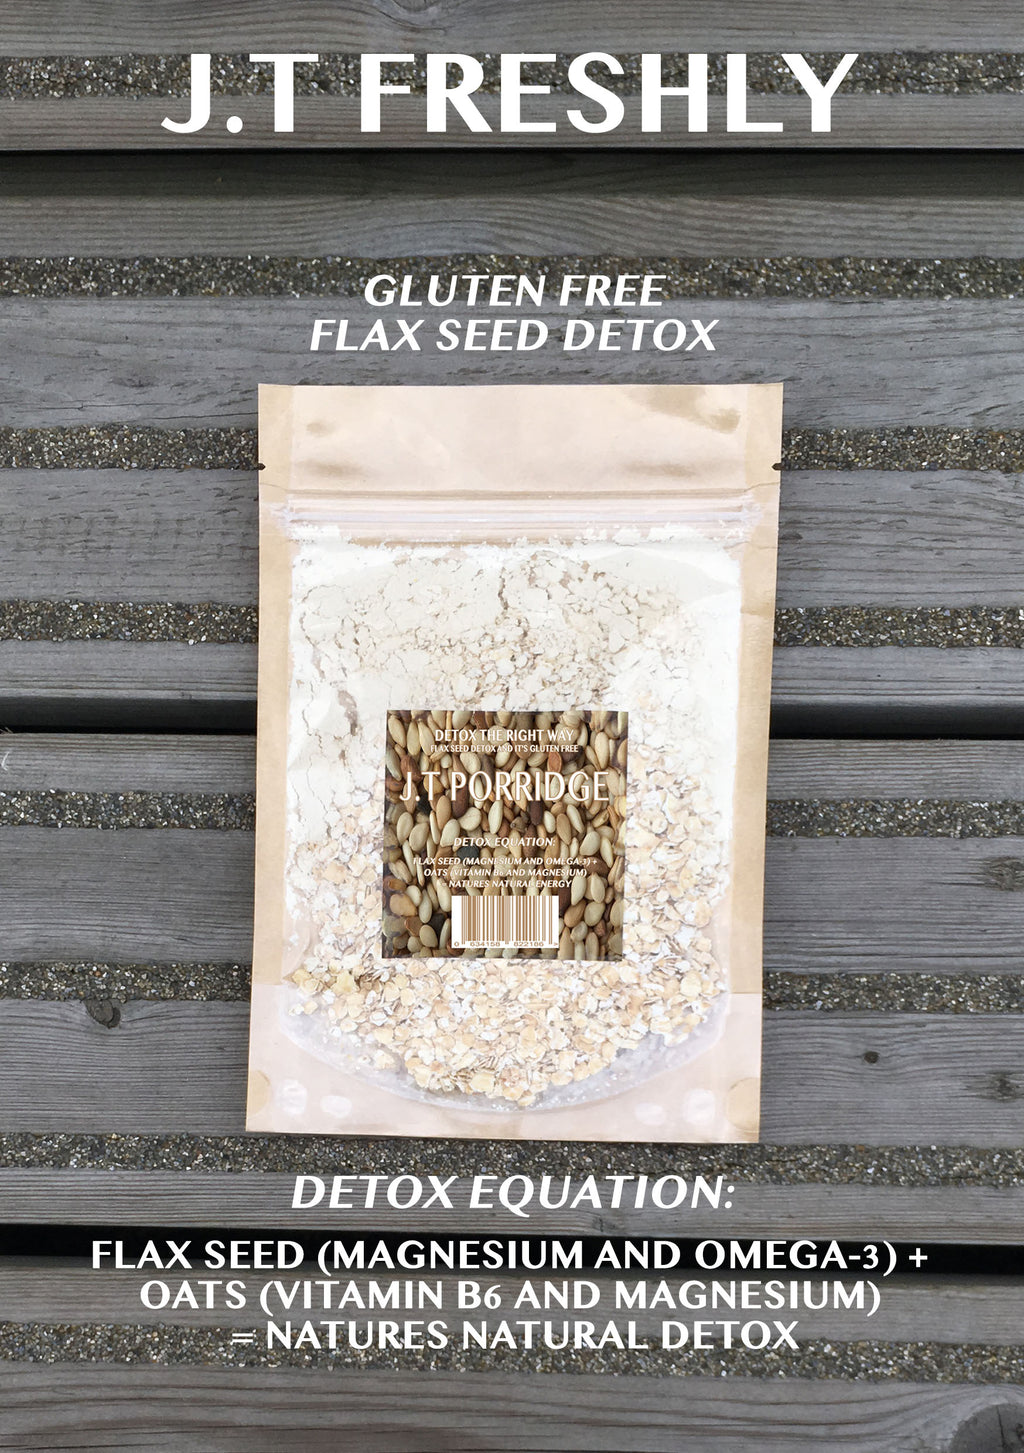 COLON CLEANSE - GROUND FLAXSEED AND GLUTEN FREE OATS DETOX PORRIDGE PROGRAMME (12 PACKS RRP £2.00/UNIT)